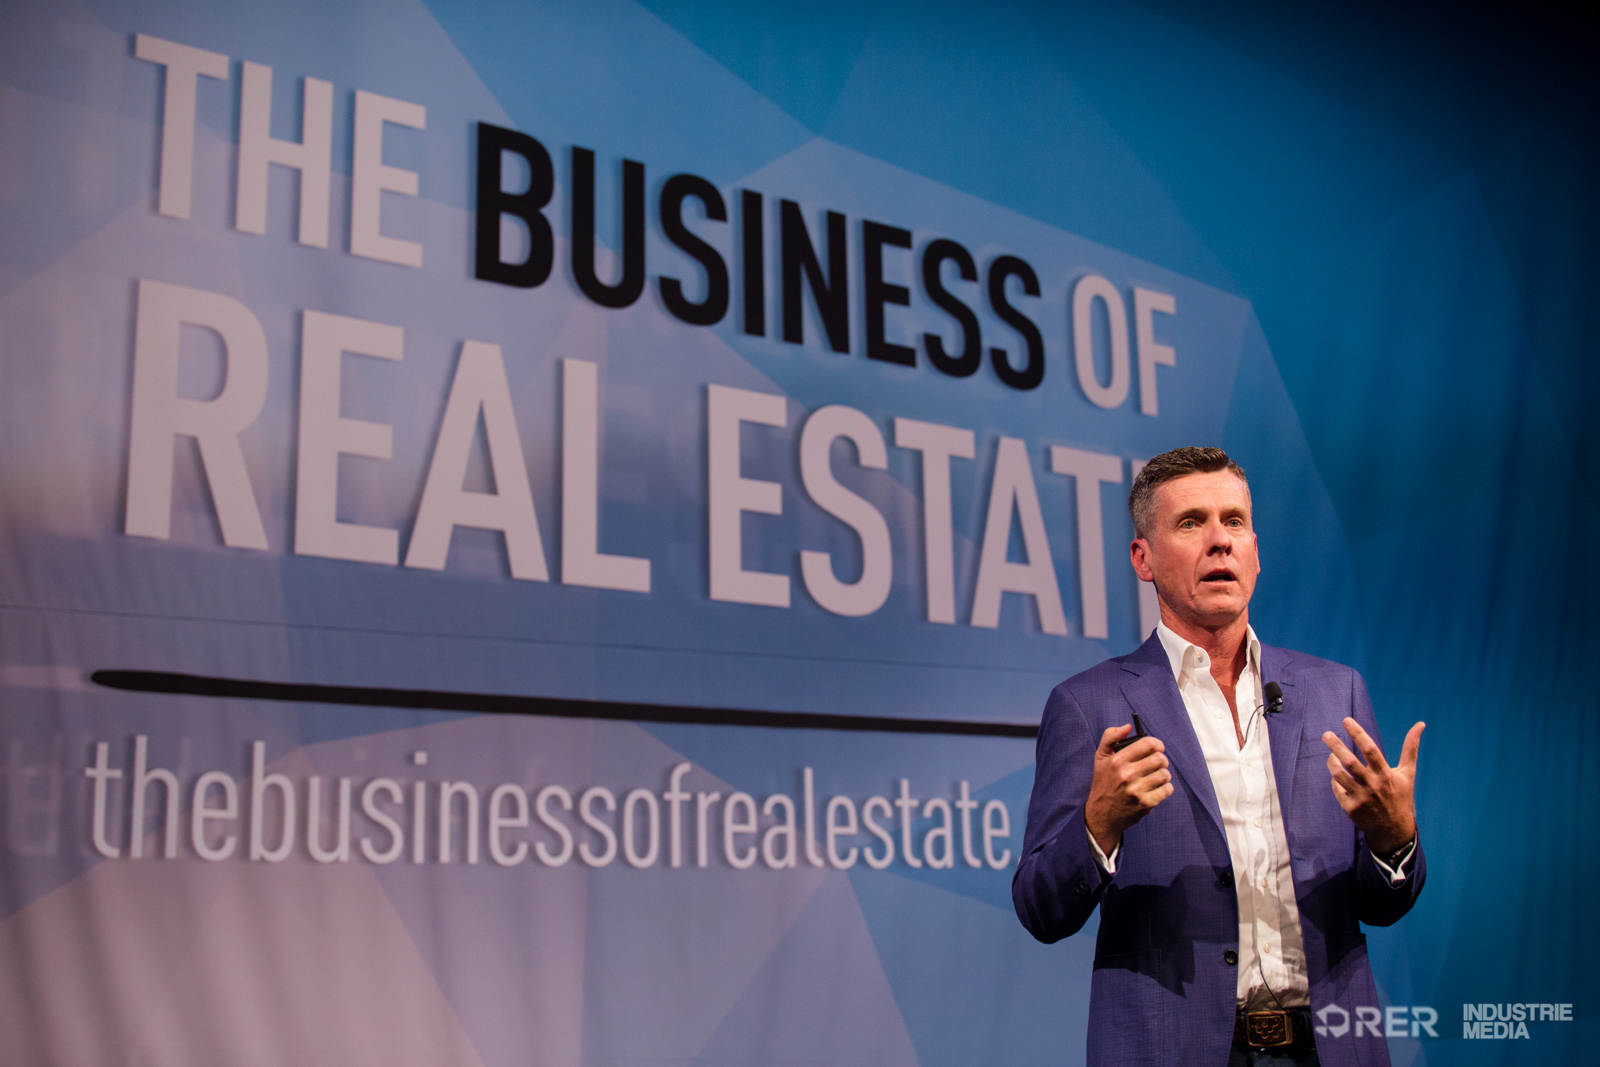 http://www.thebusinessofrealestate.com.au/wp-content/uploads/2016/09/RER_BUSINESS_OF_REAL_ESTATE-98.jpg